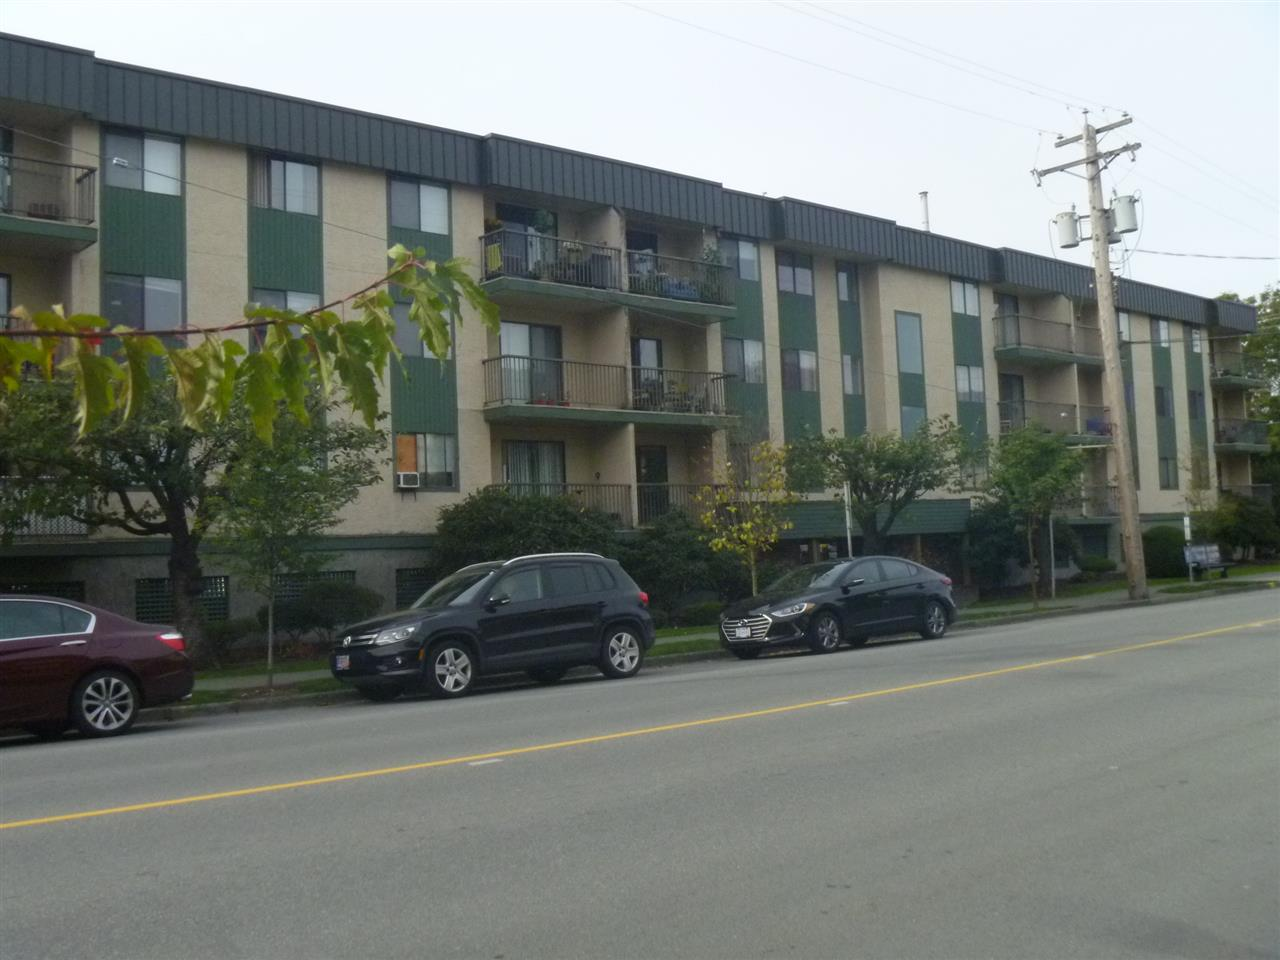 APPLEWOOD APARTMENTS! This 1 bedroom, 1 bathroom condo is 585 sq ft., centrally located and walking distance to shopping and recreation. Rentals allowed, no age restrictions. Onsite building manager, secure under-building parking, intercom and elevator. A perfect property for a first-time homeowner or as an investment!